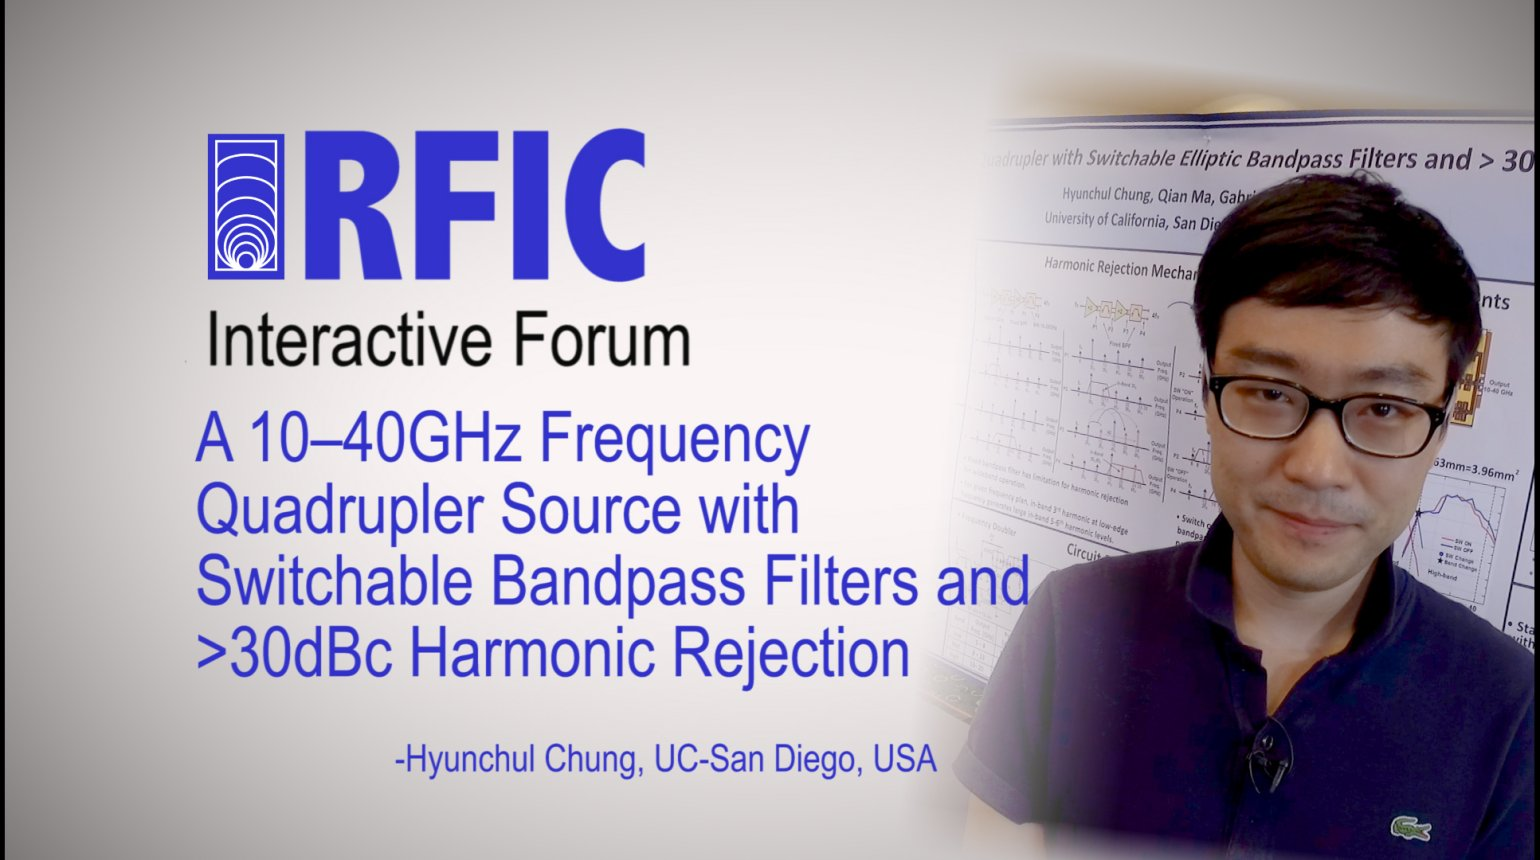 A 10-40GHz Frequency Quadrupler Source with Switchable Bandpass Filters and >30dBc Harmonic Rejection: RFIC Interactive Forum 2017